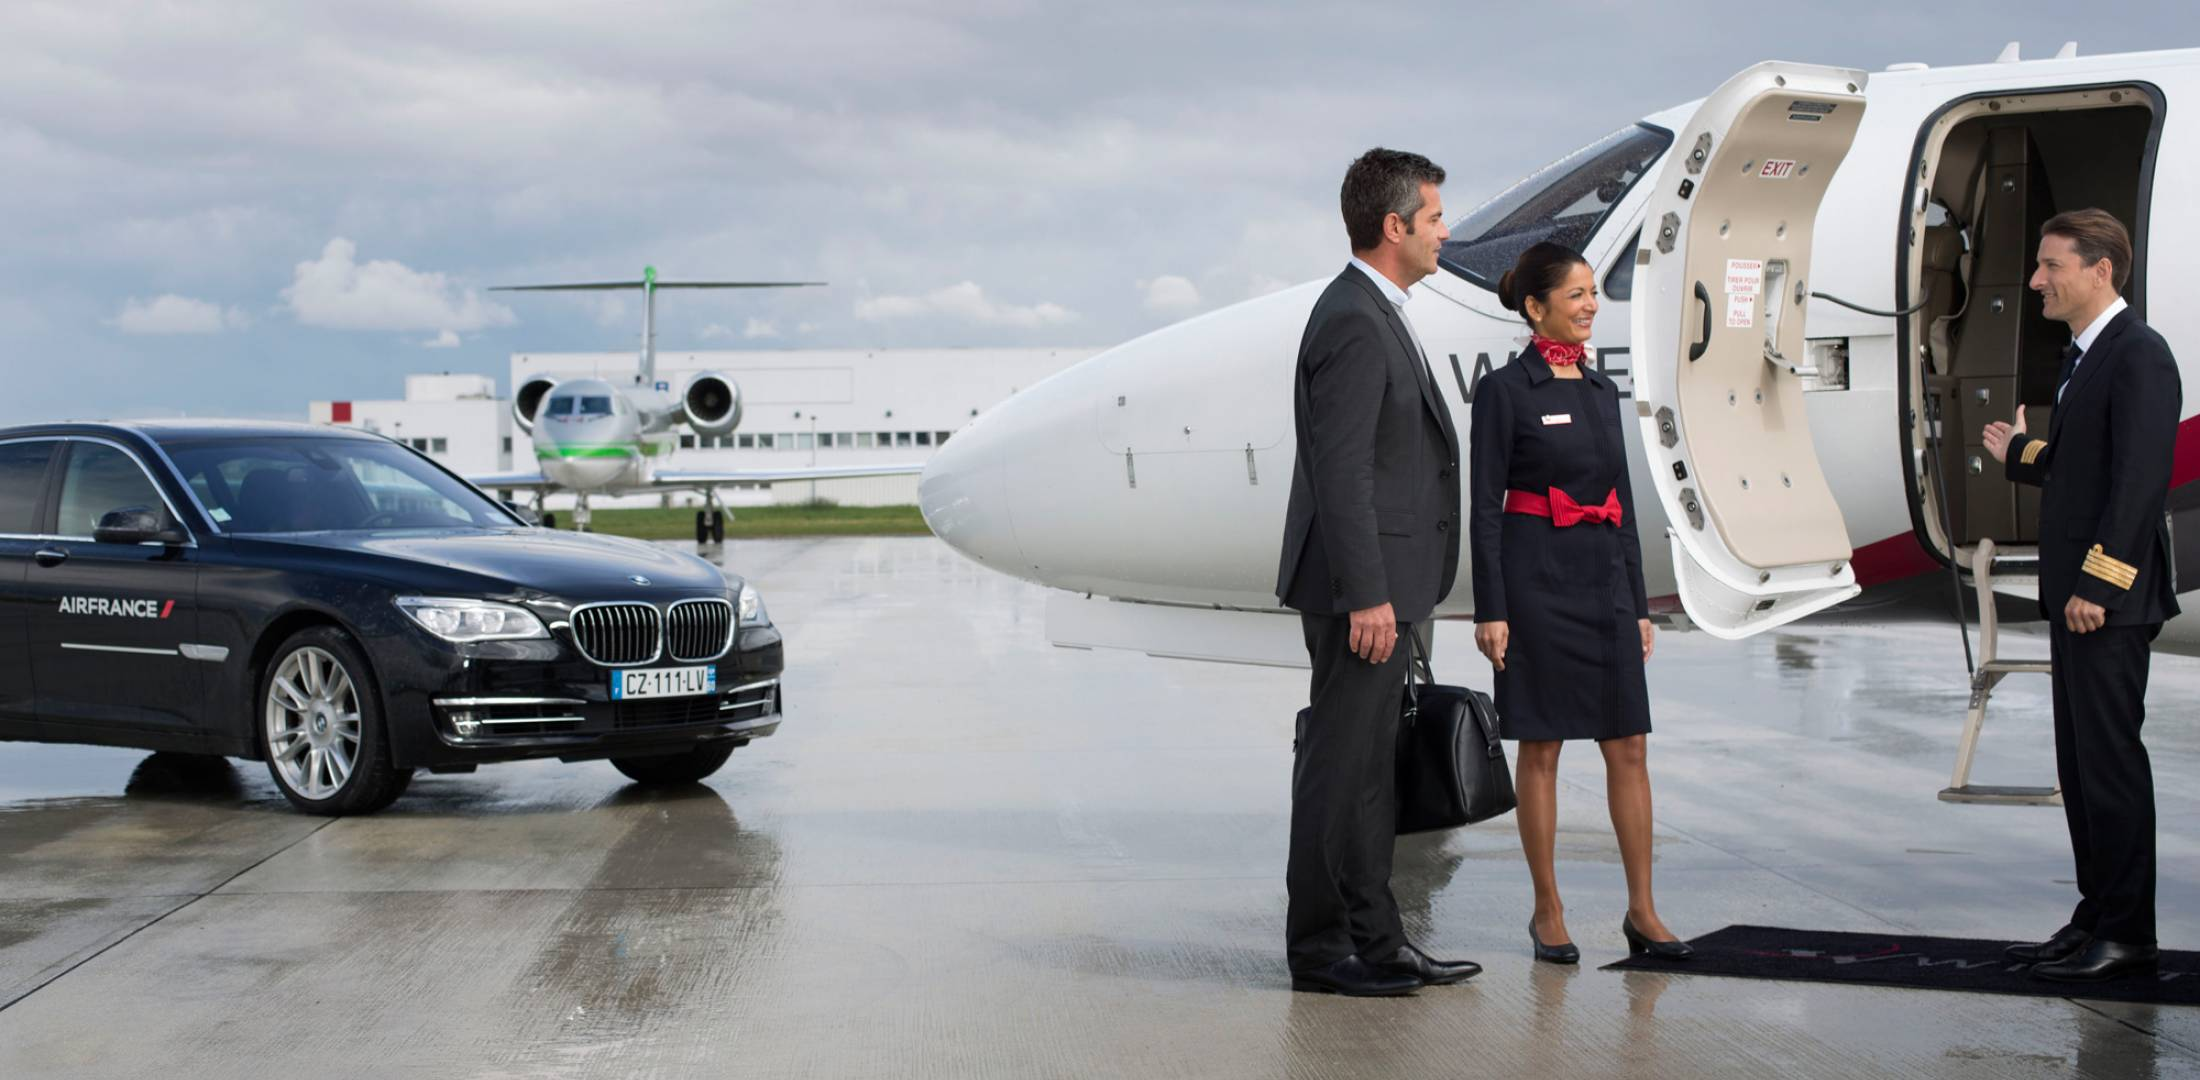 First-class Air France passengers make Wijet connection